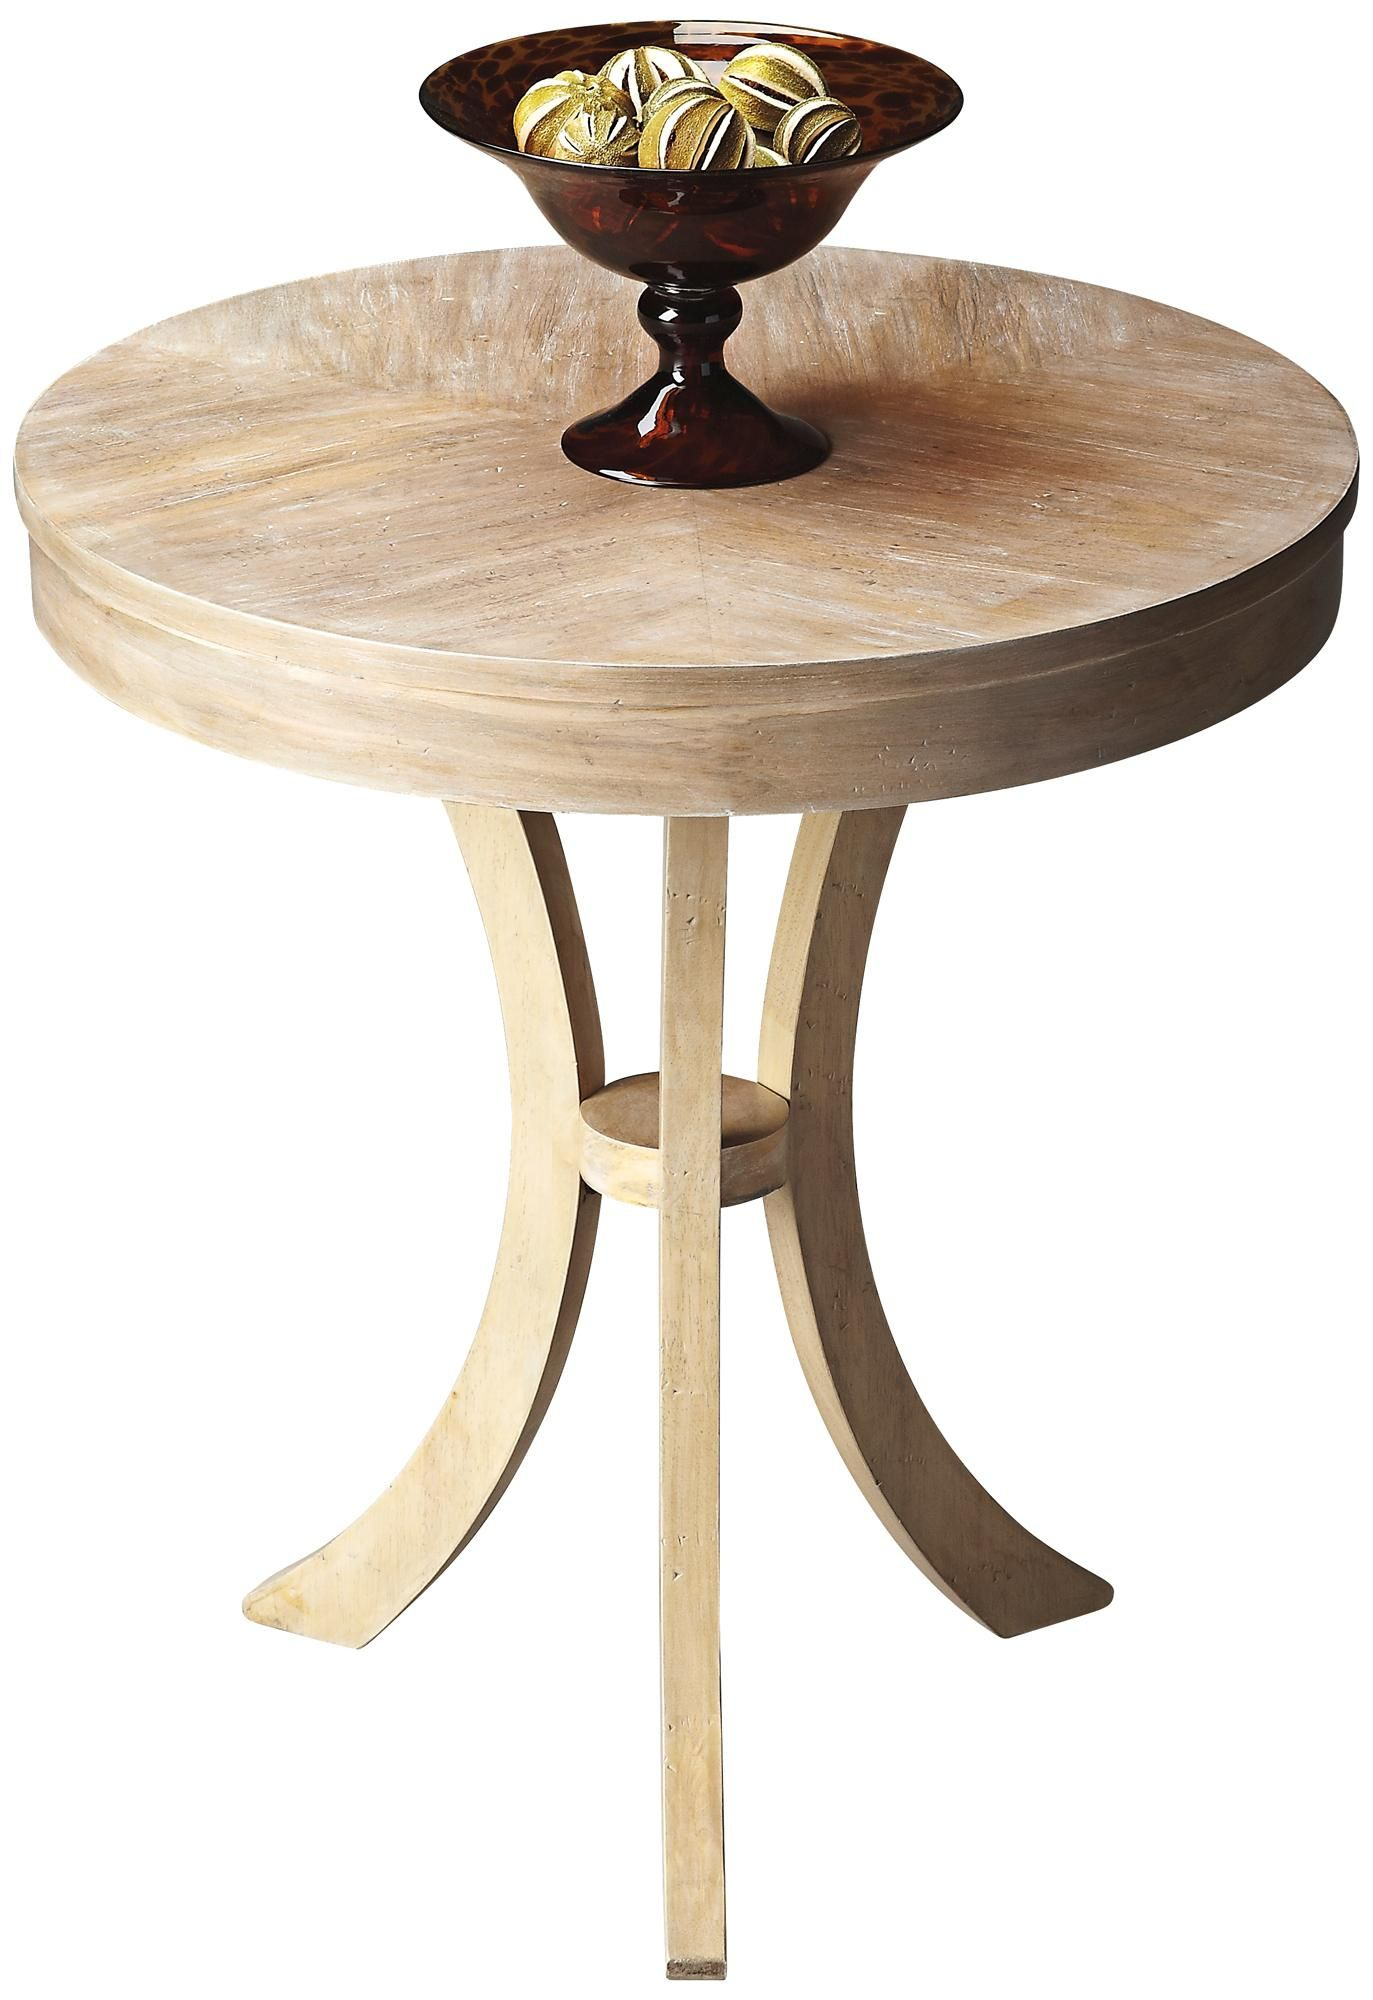 butler loft driftwood round side table lampsplus turpens pottery barn jamie accent joy target small nightstands for bedroom bunnings wicker outdoor setting ikea kids storage